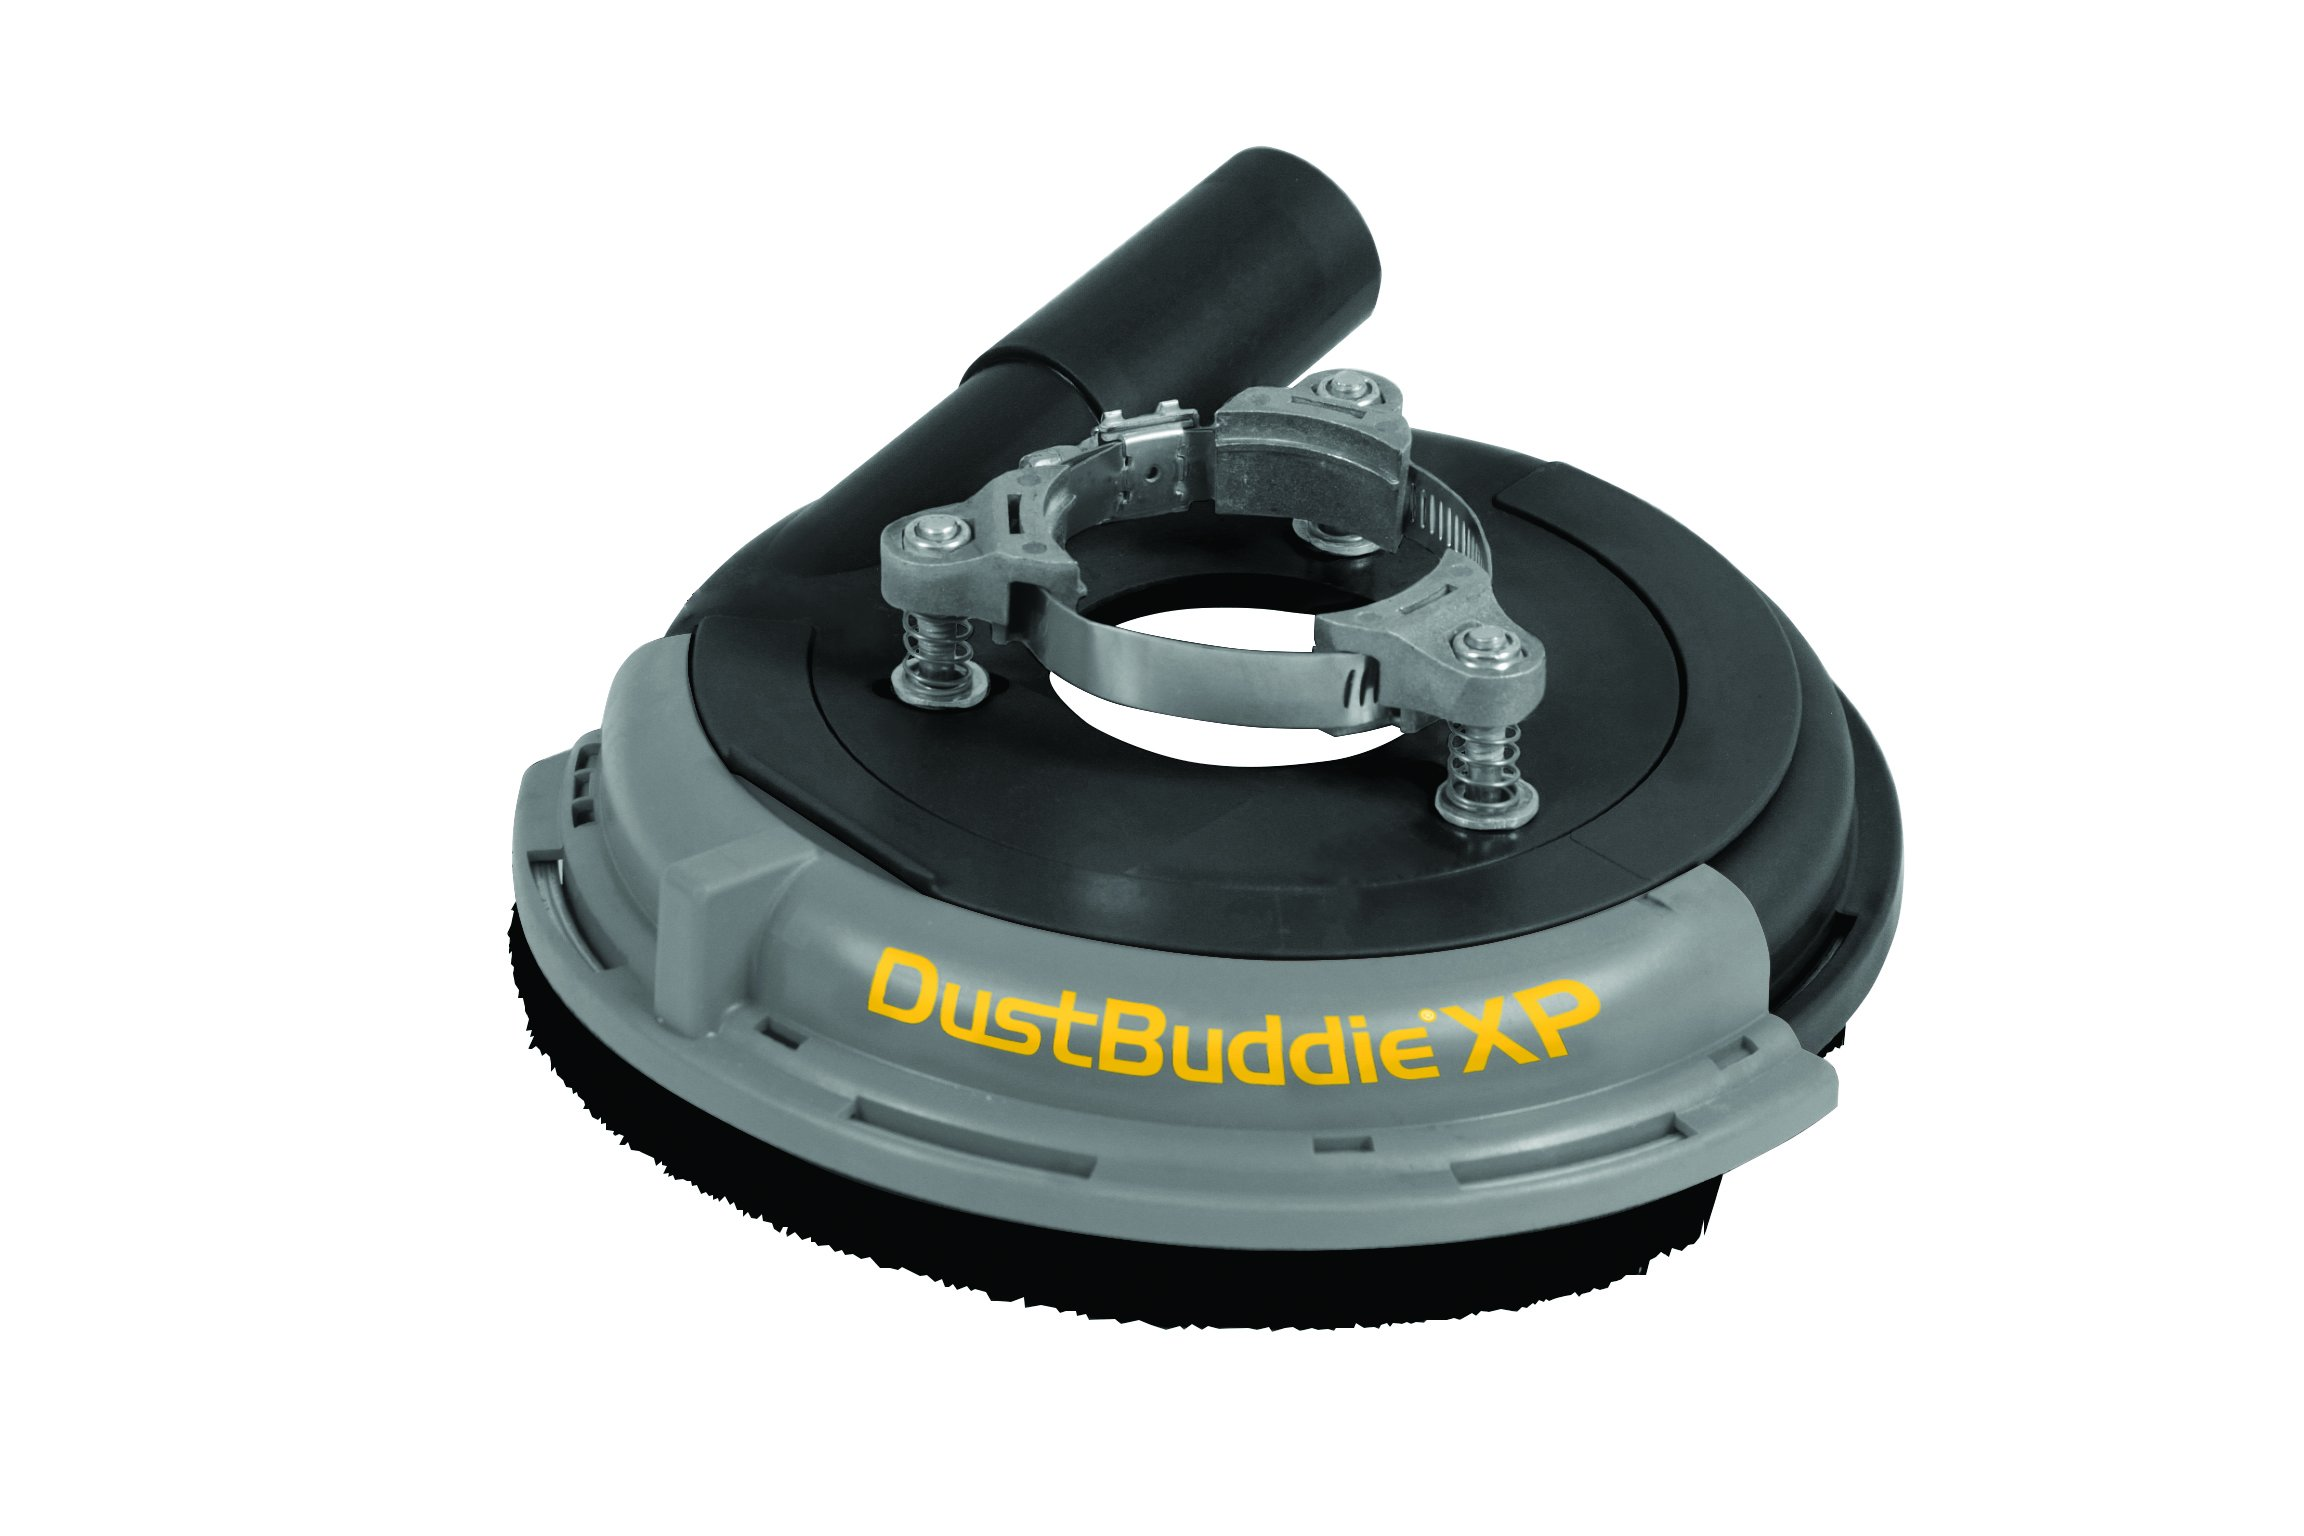 Dustless Technologies D5850 Dust Buddie XP Universal Dust Control Attachment for Grinders, 7'', Black/Gray